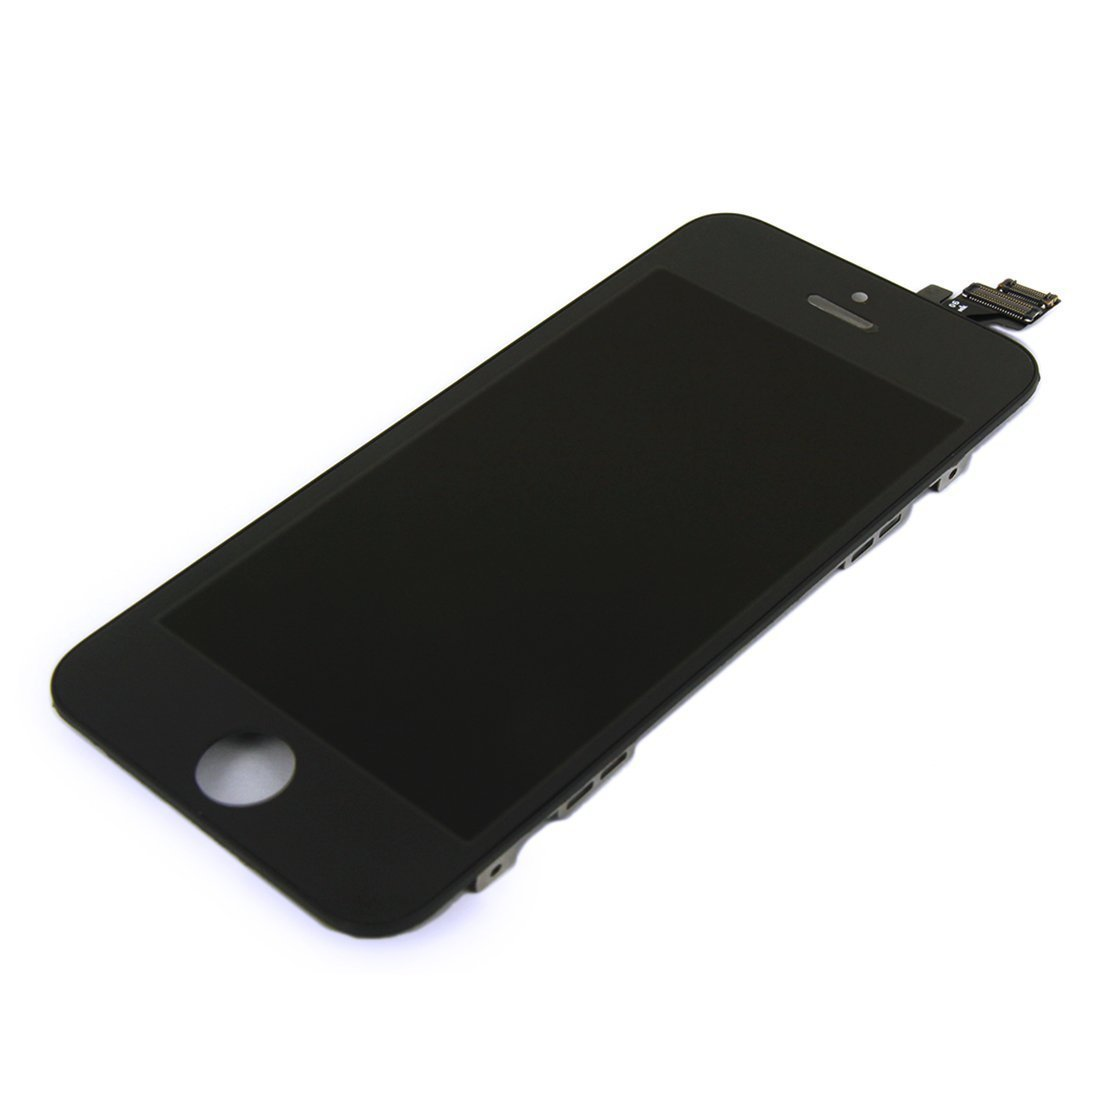 iPhone 5 Black Full LCD Display + Touch Screen Digitizer Mobile Phone Repair Part Replacement